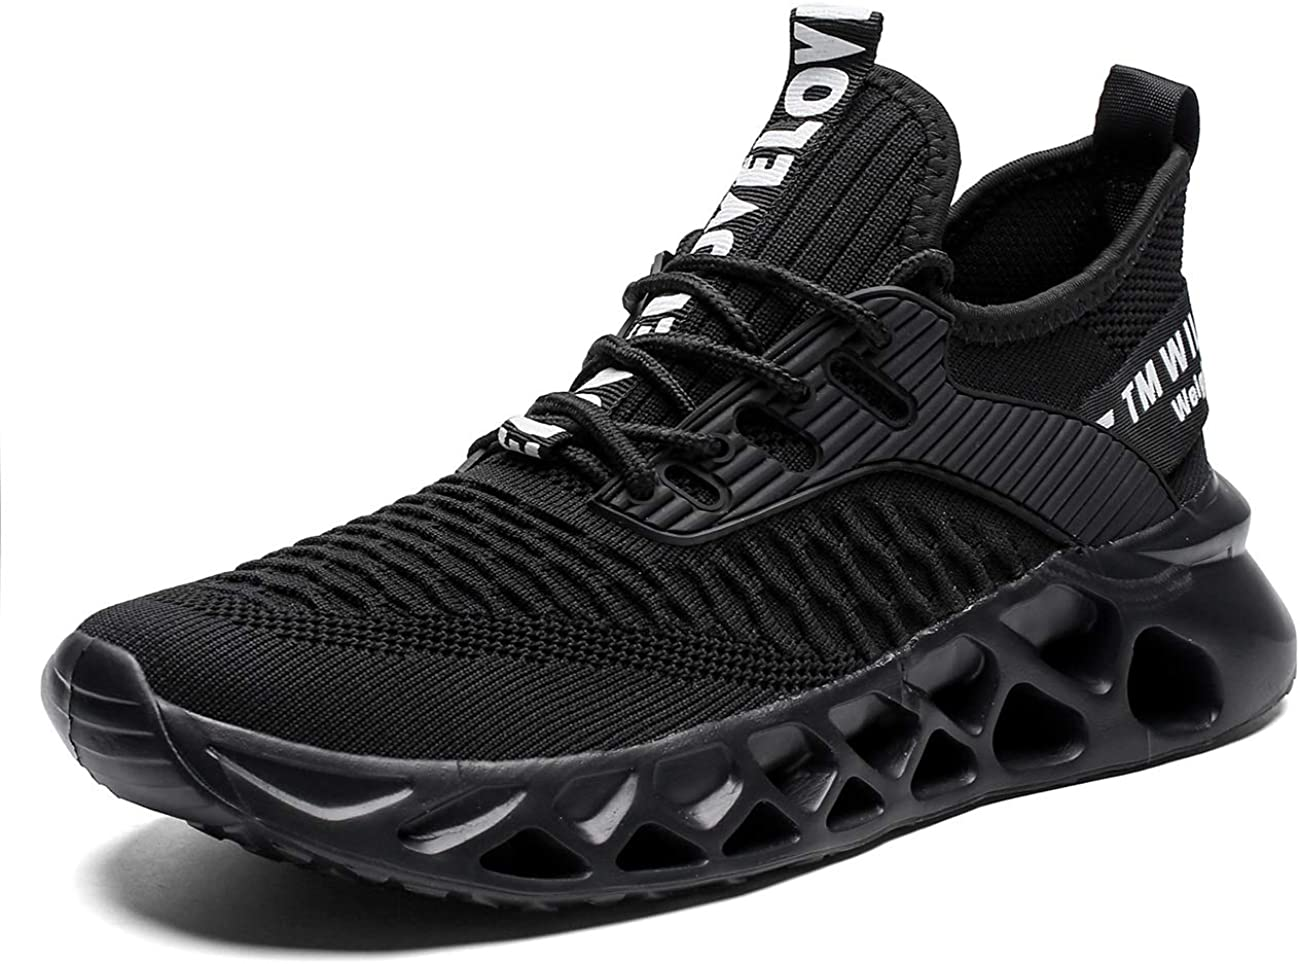 Kvovzo Mens Running Shoes Mesh Breathable Sneakers Lightweight Tennis Sport Casual Walking Athletic for Men Volleyball Workout